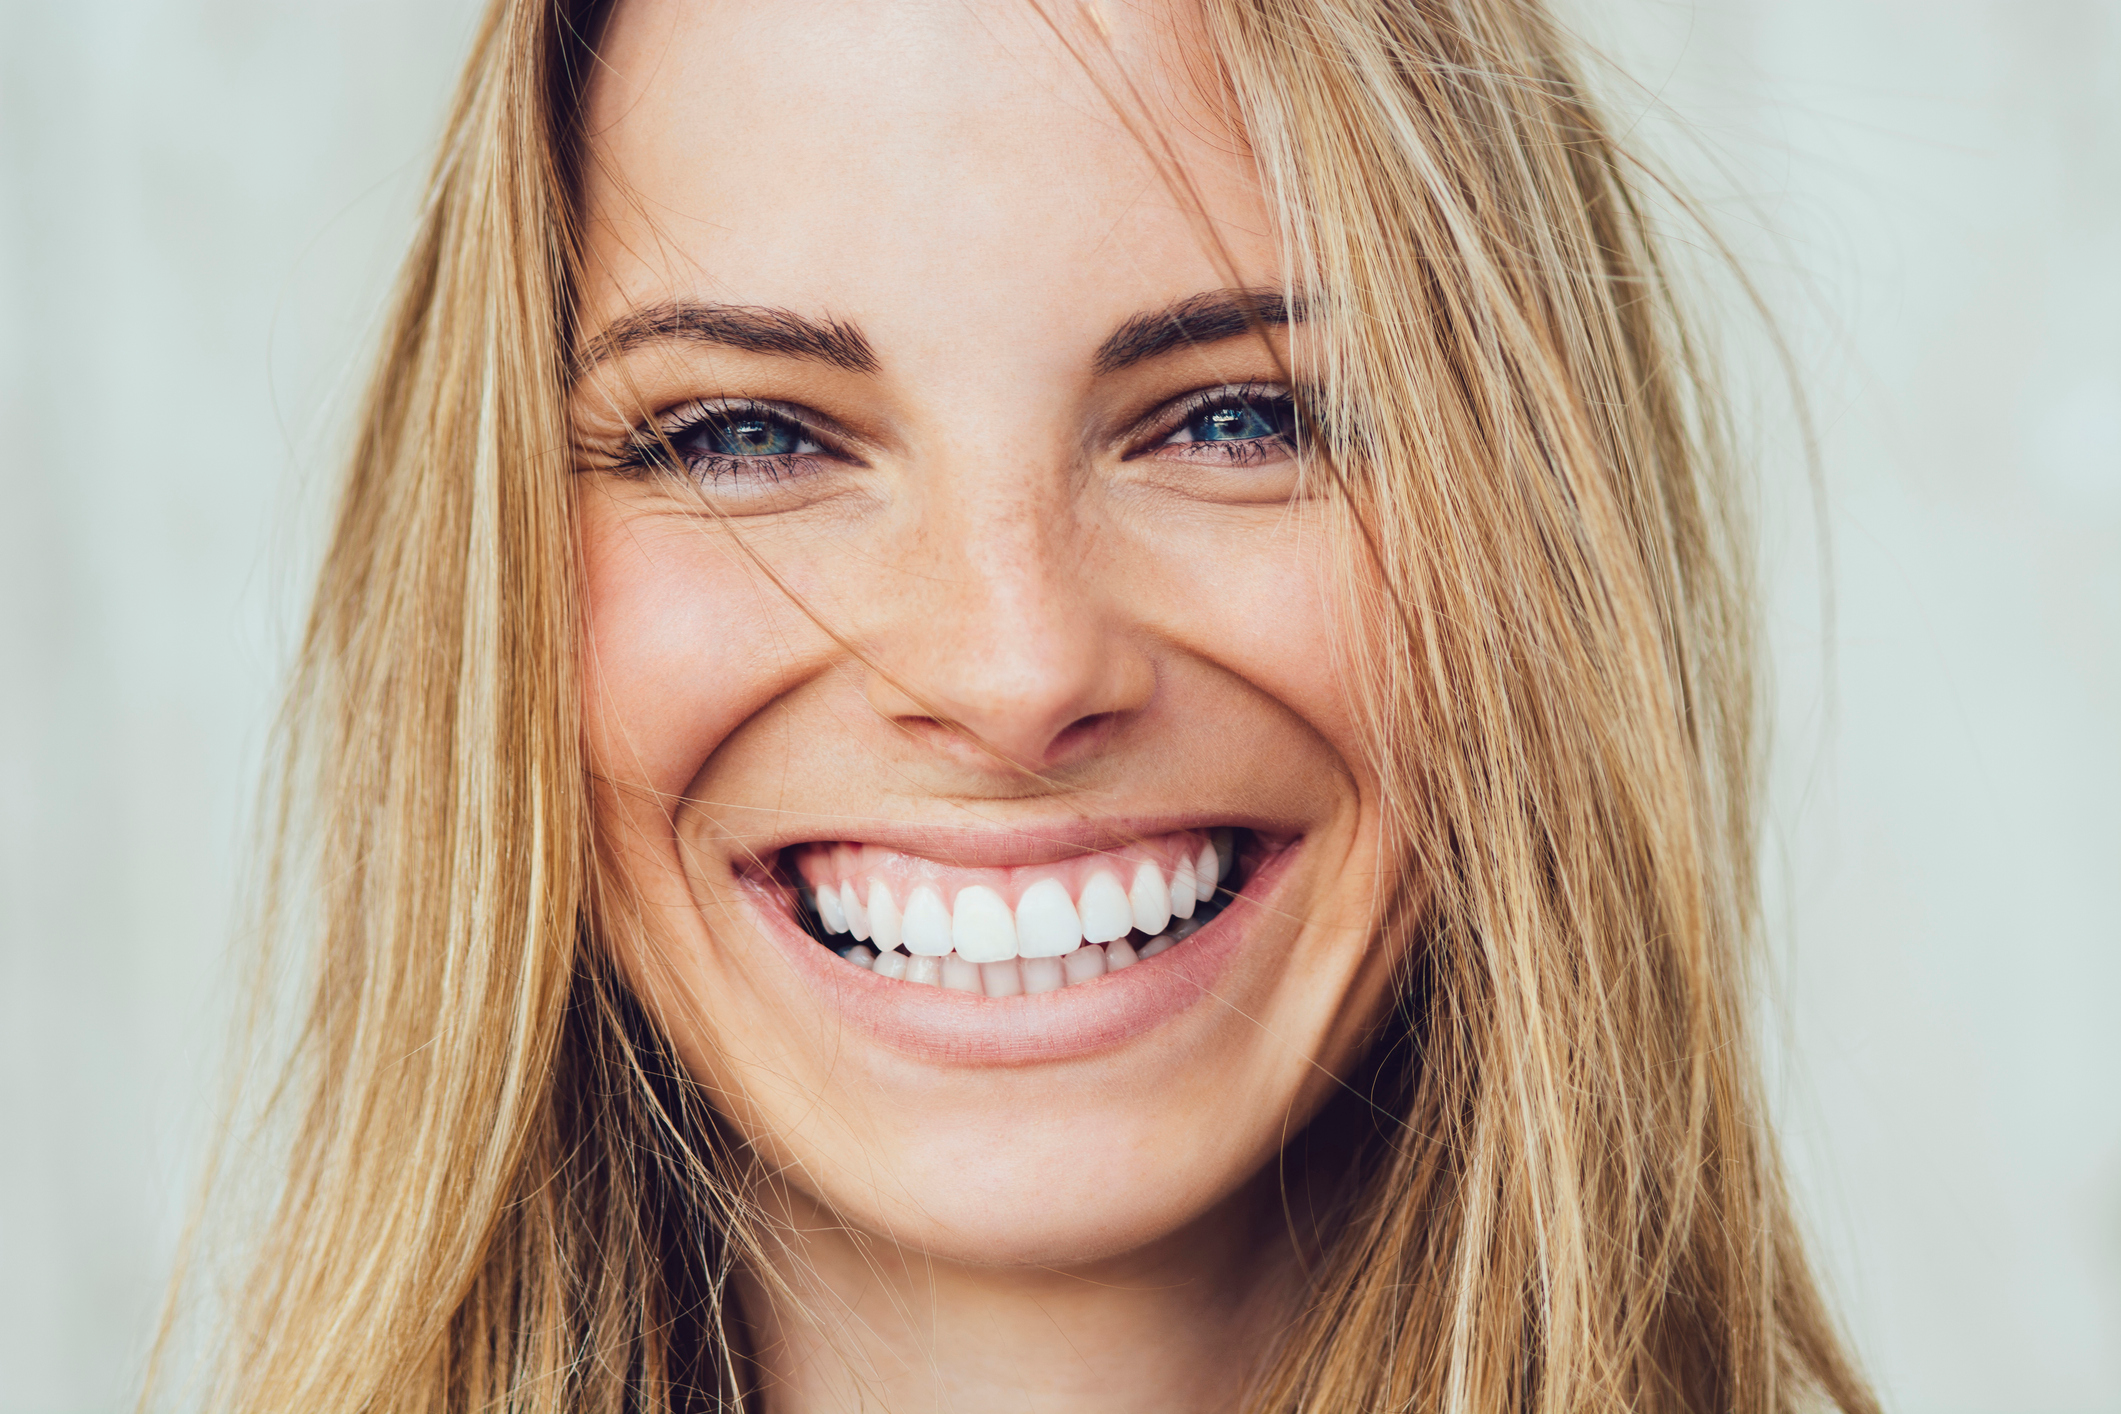 15 Best Teeth Whitening Products 2019 Teeth Whitening At Home